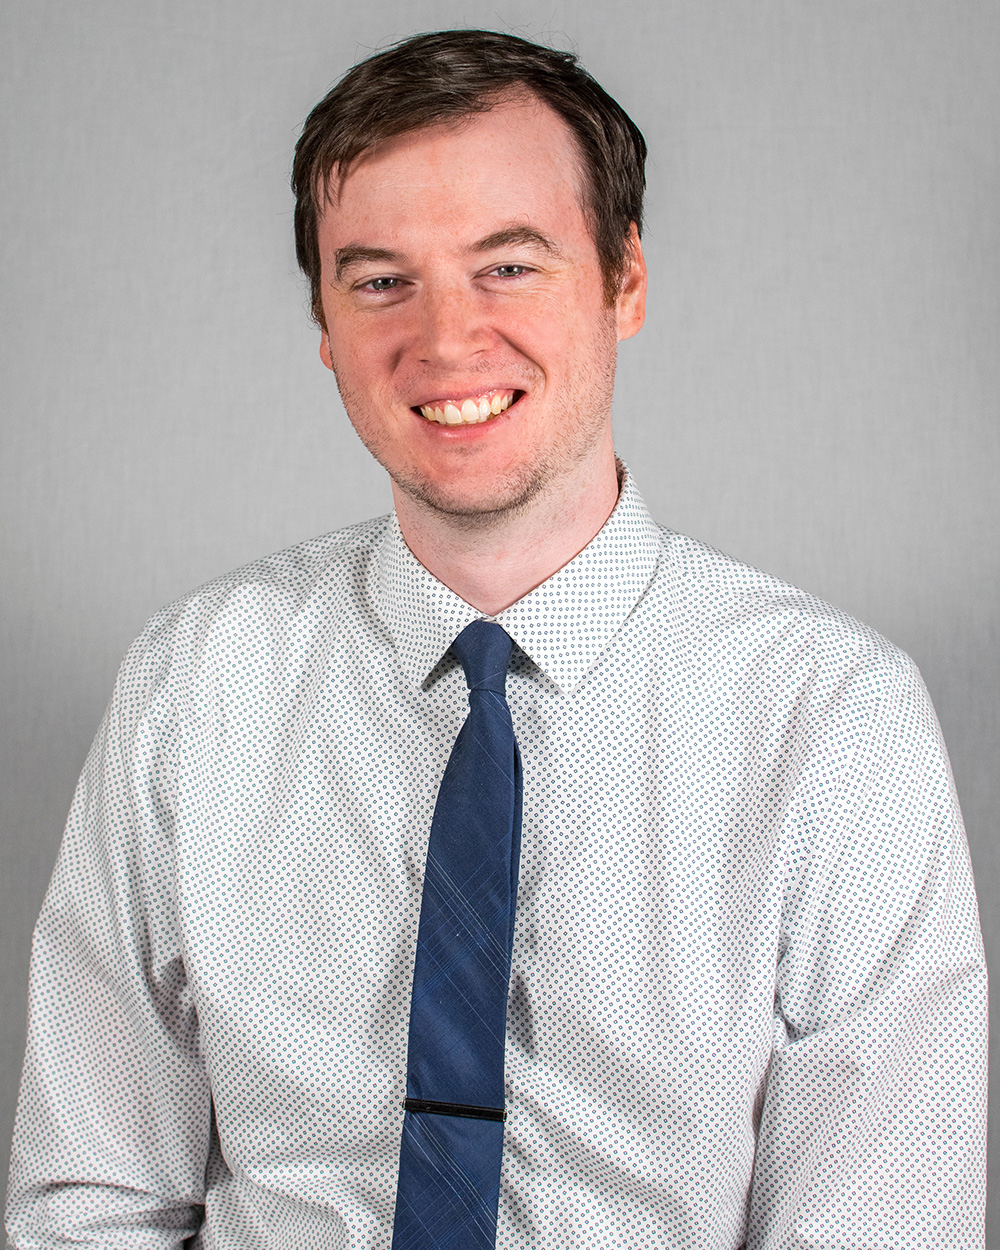 Smiling person with dark hair poses in a polka-dot shirt and blue tie